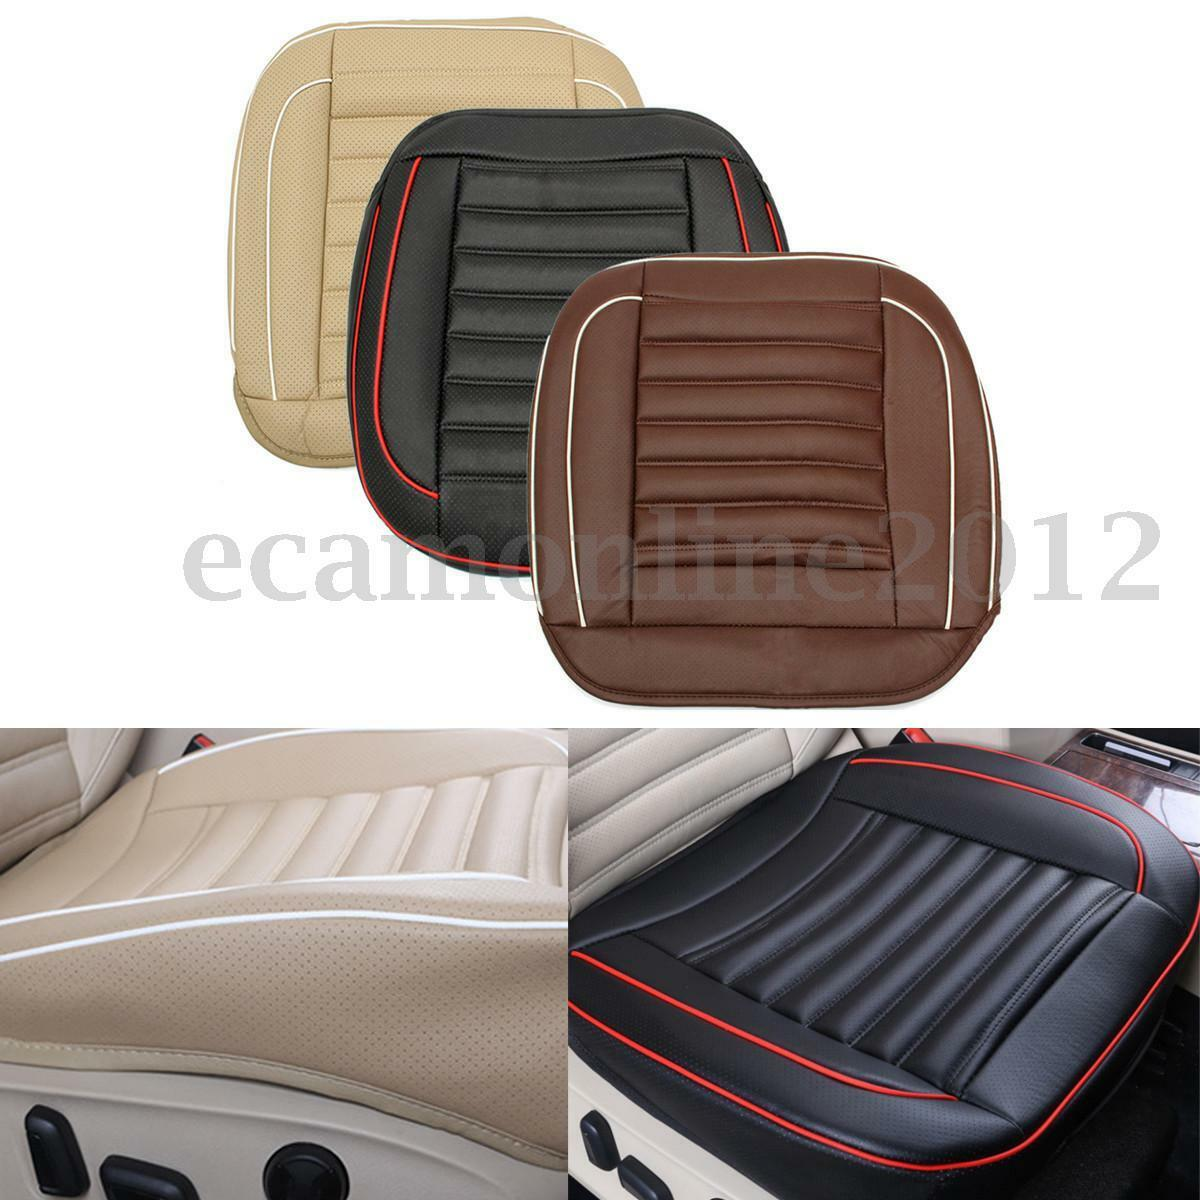 pu cuir voiture auto si ge chaise couverture pad coussin tapis housse protection eur 16 69. Black Bedroom Furniture Sets. Home Design Ideas